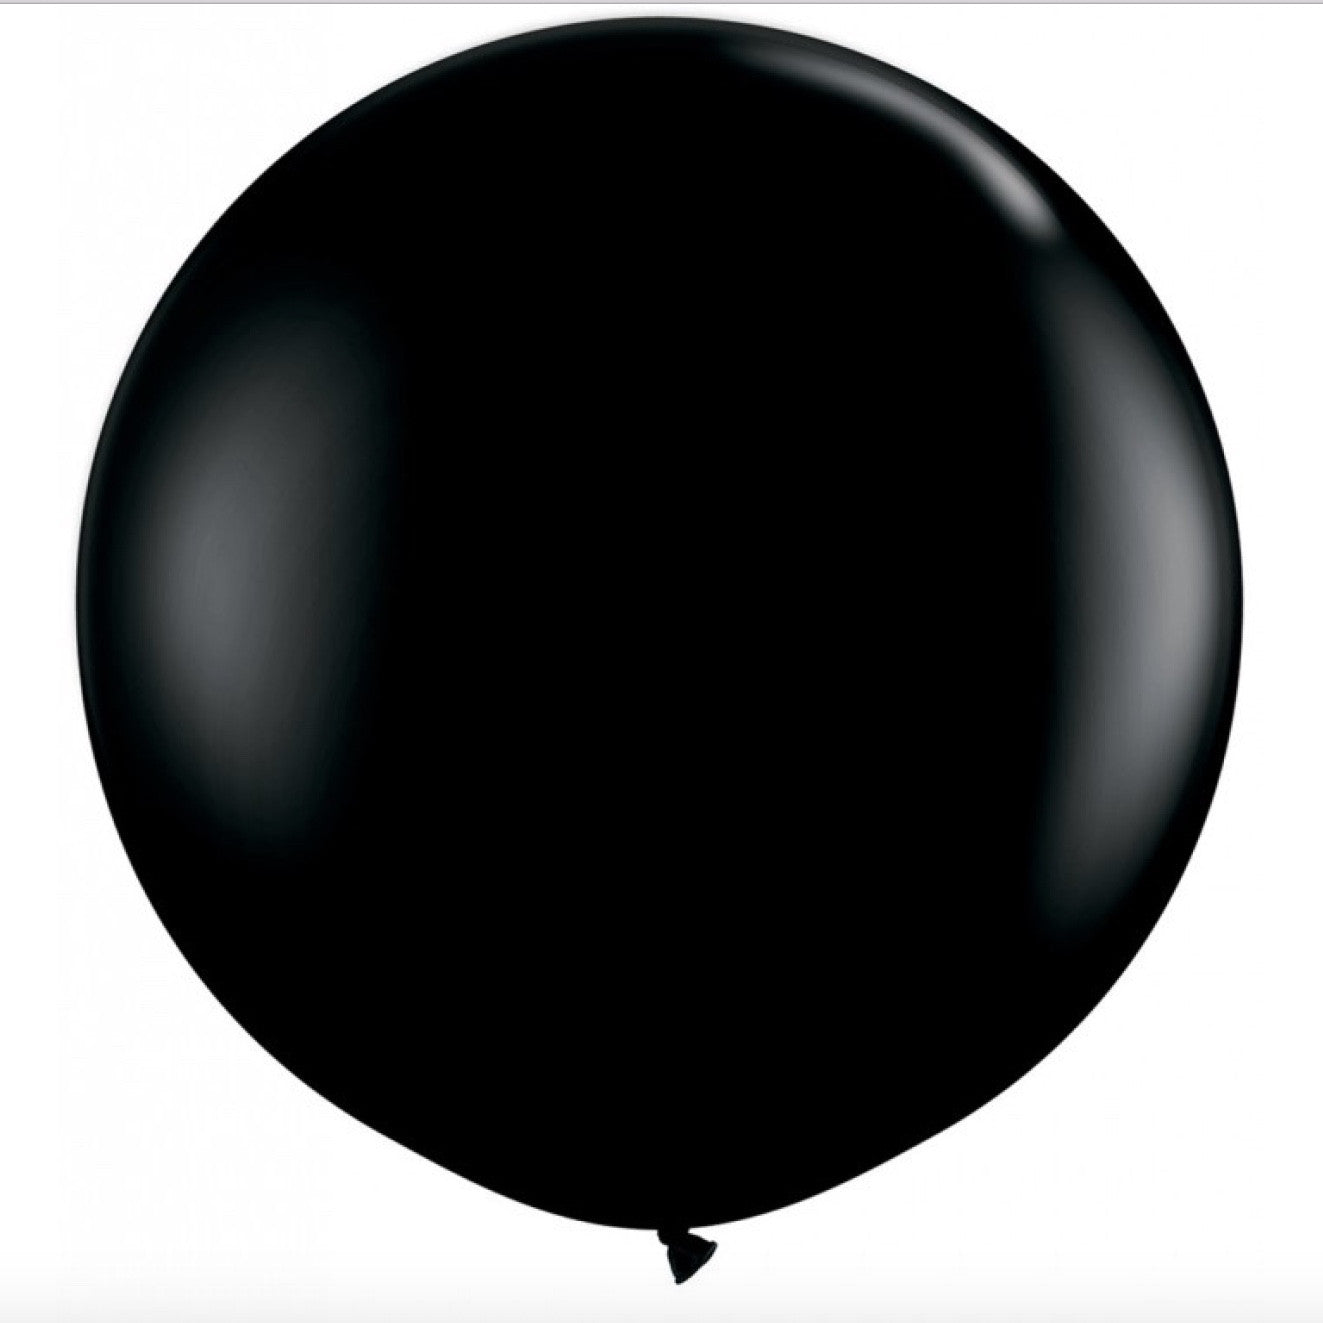 "Giant Round Balloon 36""- Onyx Black, SE-Surprize Enterprize, Putti Fine Furnishings"